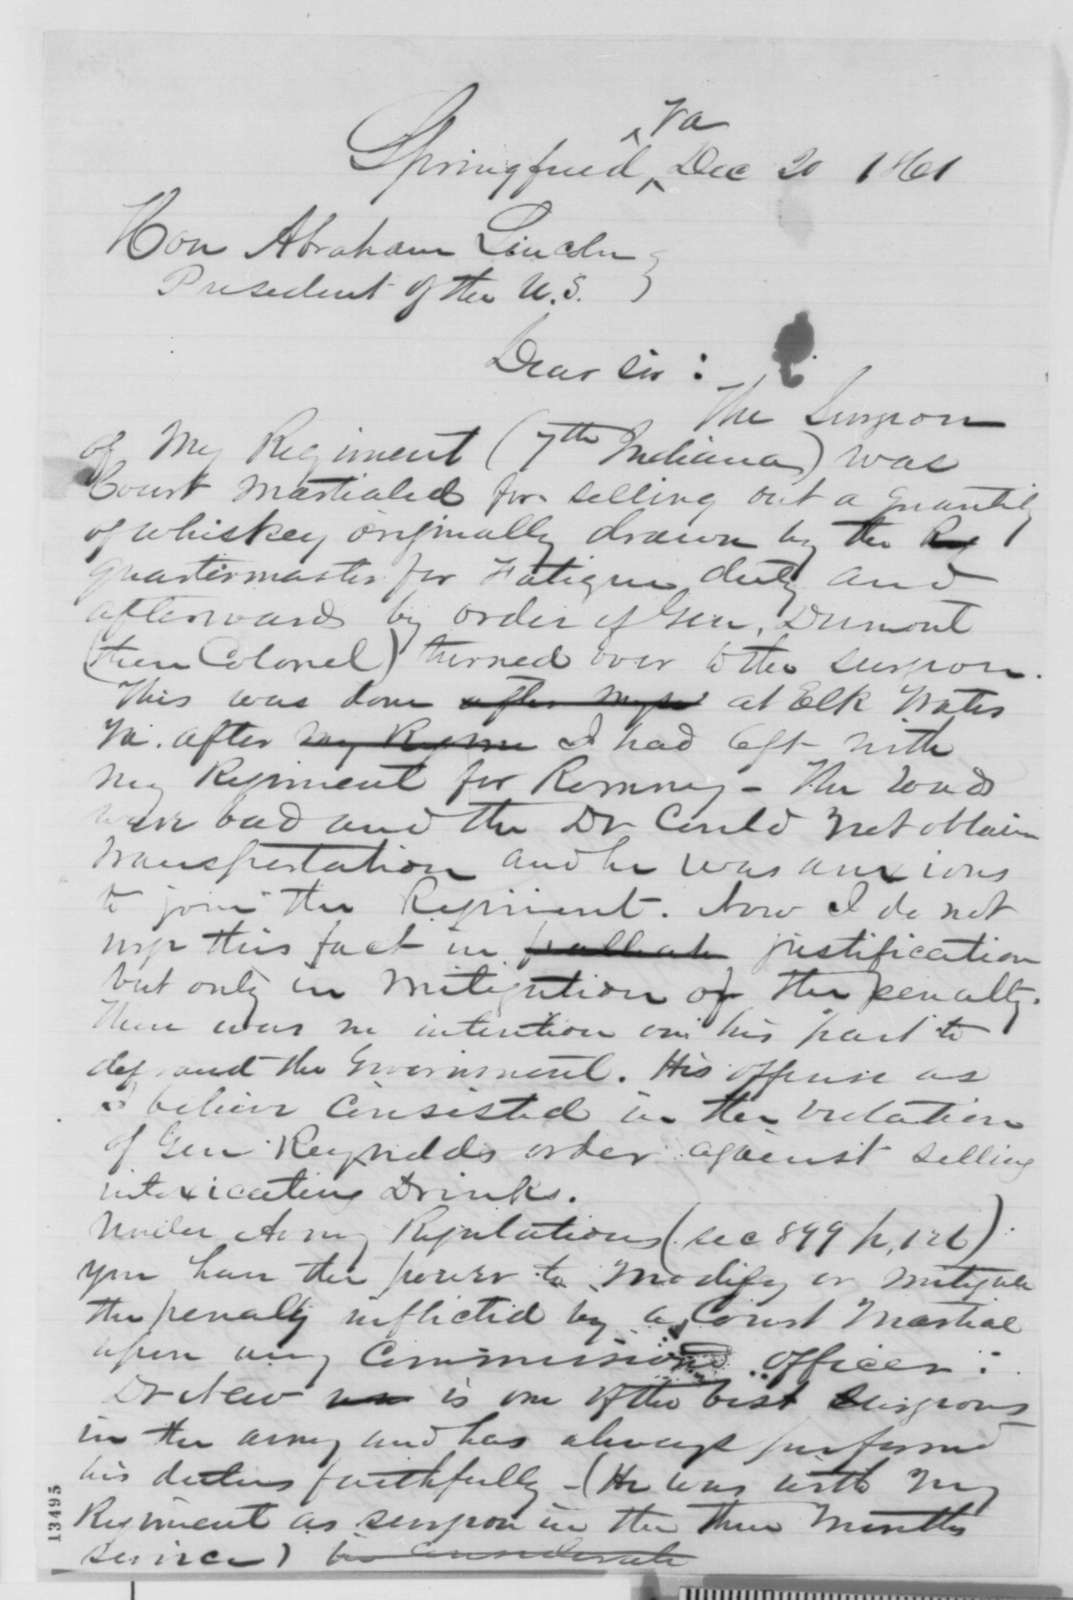 James Gavin to Abraham Lincoln, Friday, December 20, 1861  (Military affairs)